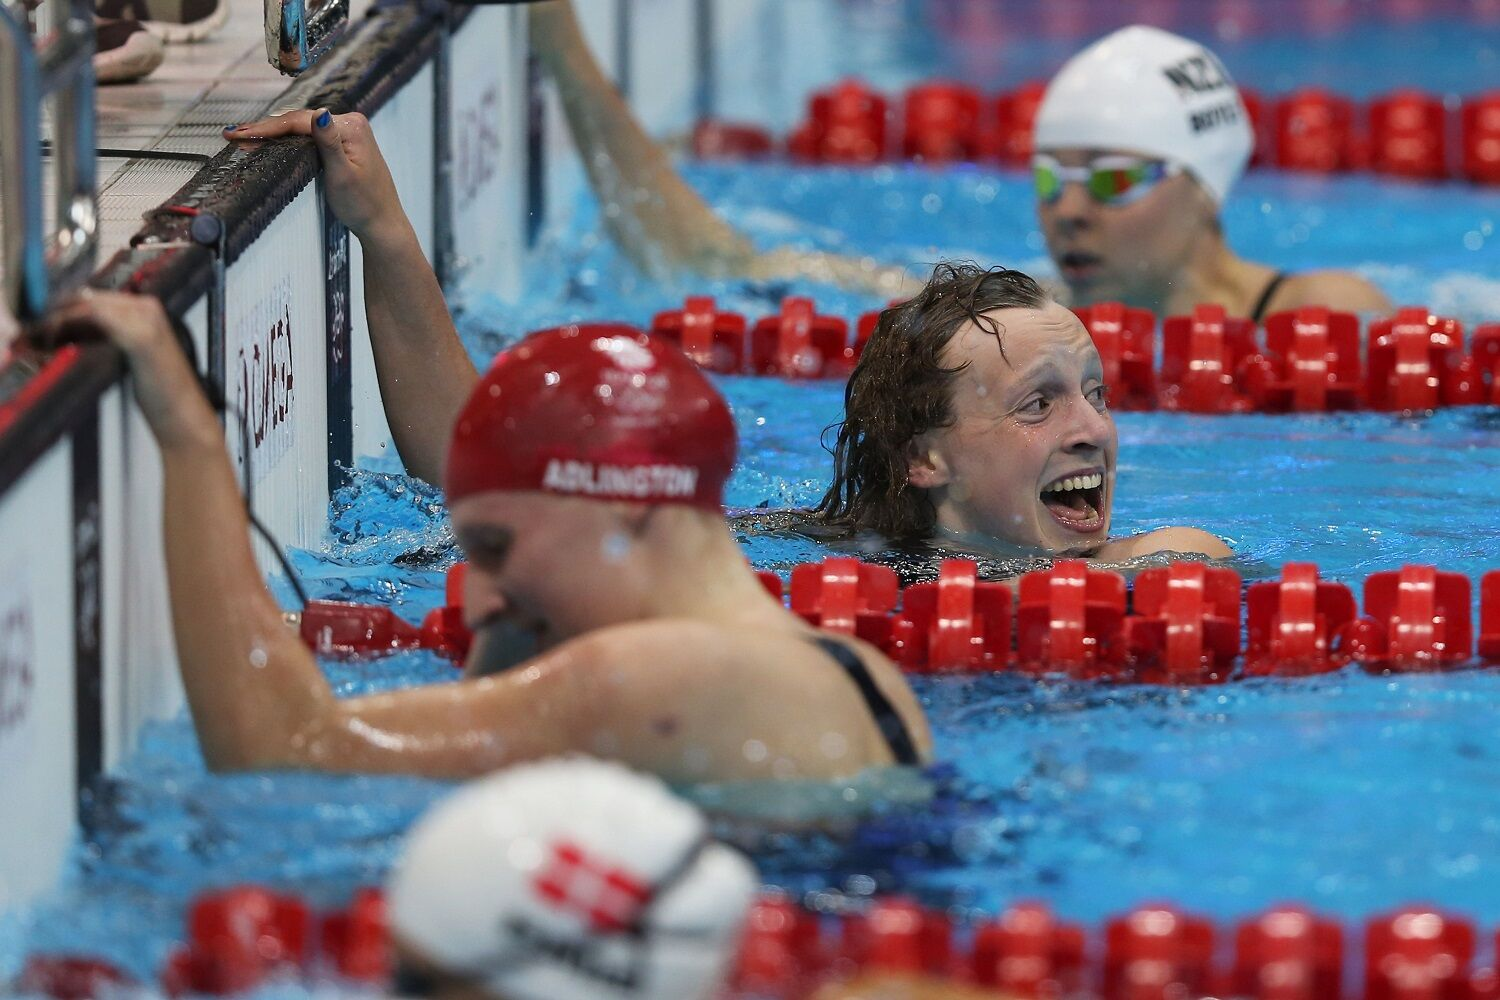 """<p><strong>6. Katie Ledecky 800m in London</strong></p> <p>It can be hard to remember now, but Ledecky was just 15 when she stunned home favorite and world record-holder Rebecca Adlington — in front of god, and country, and the Royal Family, no less — in a race that's supposed to be for the veterans of the sport. She had a shot at a medal, sure, but nothing like this, nothing like the announcement that this wasn't anyone else's pool but hers. <a href=""""https://www.youtube.com/watch?v=JHbNKX3VkIM"""" target=""""_blank"""" rel=""""noopener"""">Just listen to the announcers</a> — at no point are they framing it as Ledecky's race until 600 meters in. The only thing that would elude Ledecky that day was the world record — just — but not for long. While the 2012 result didn't produce the kind of stunning visuals of <a href=""""https://www.youtube.com/watch?v=GAGXNs0MXzI"""" target=""""_blank"""" rel=""""noopener"""">her dominant 2016 swim</a>, it reset the pecking order in the pool, so long as Ledecky's on the blocks. Ledecky will never sneak up on anyone again … but good luck catching her.</p>"""